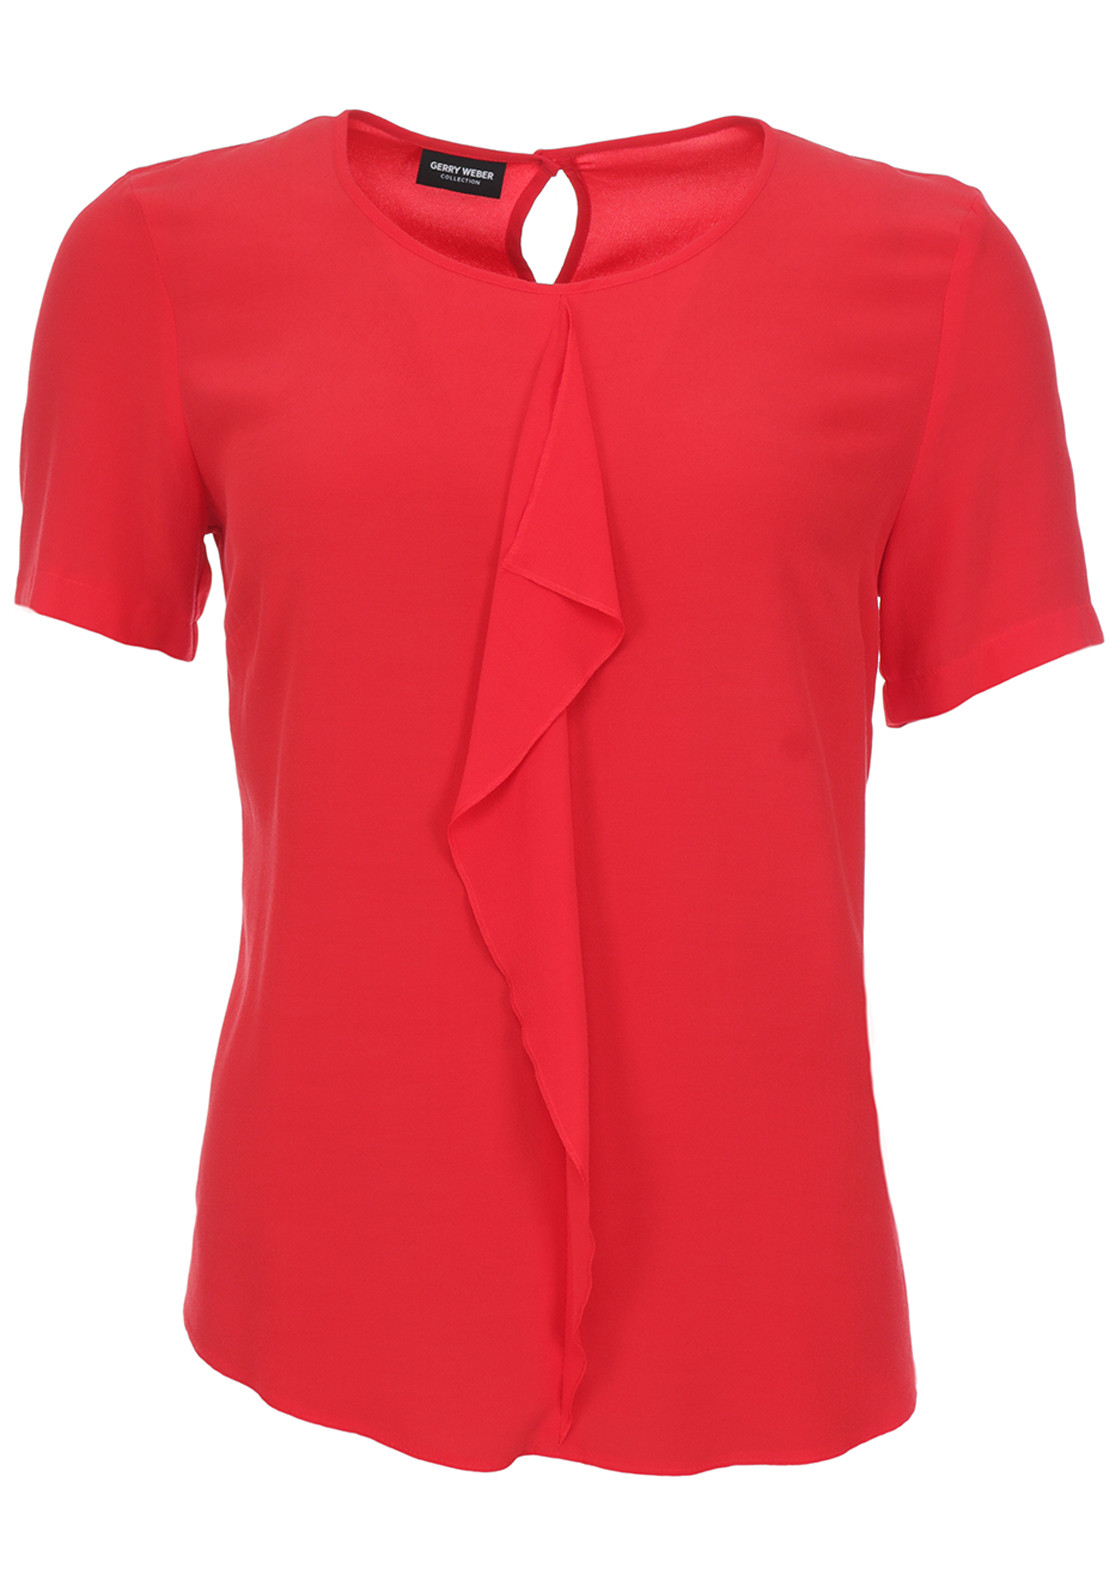 Gerry Weber Ruffle Trim Crepe Top, Red